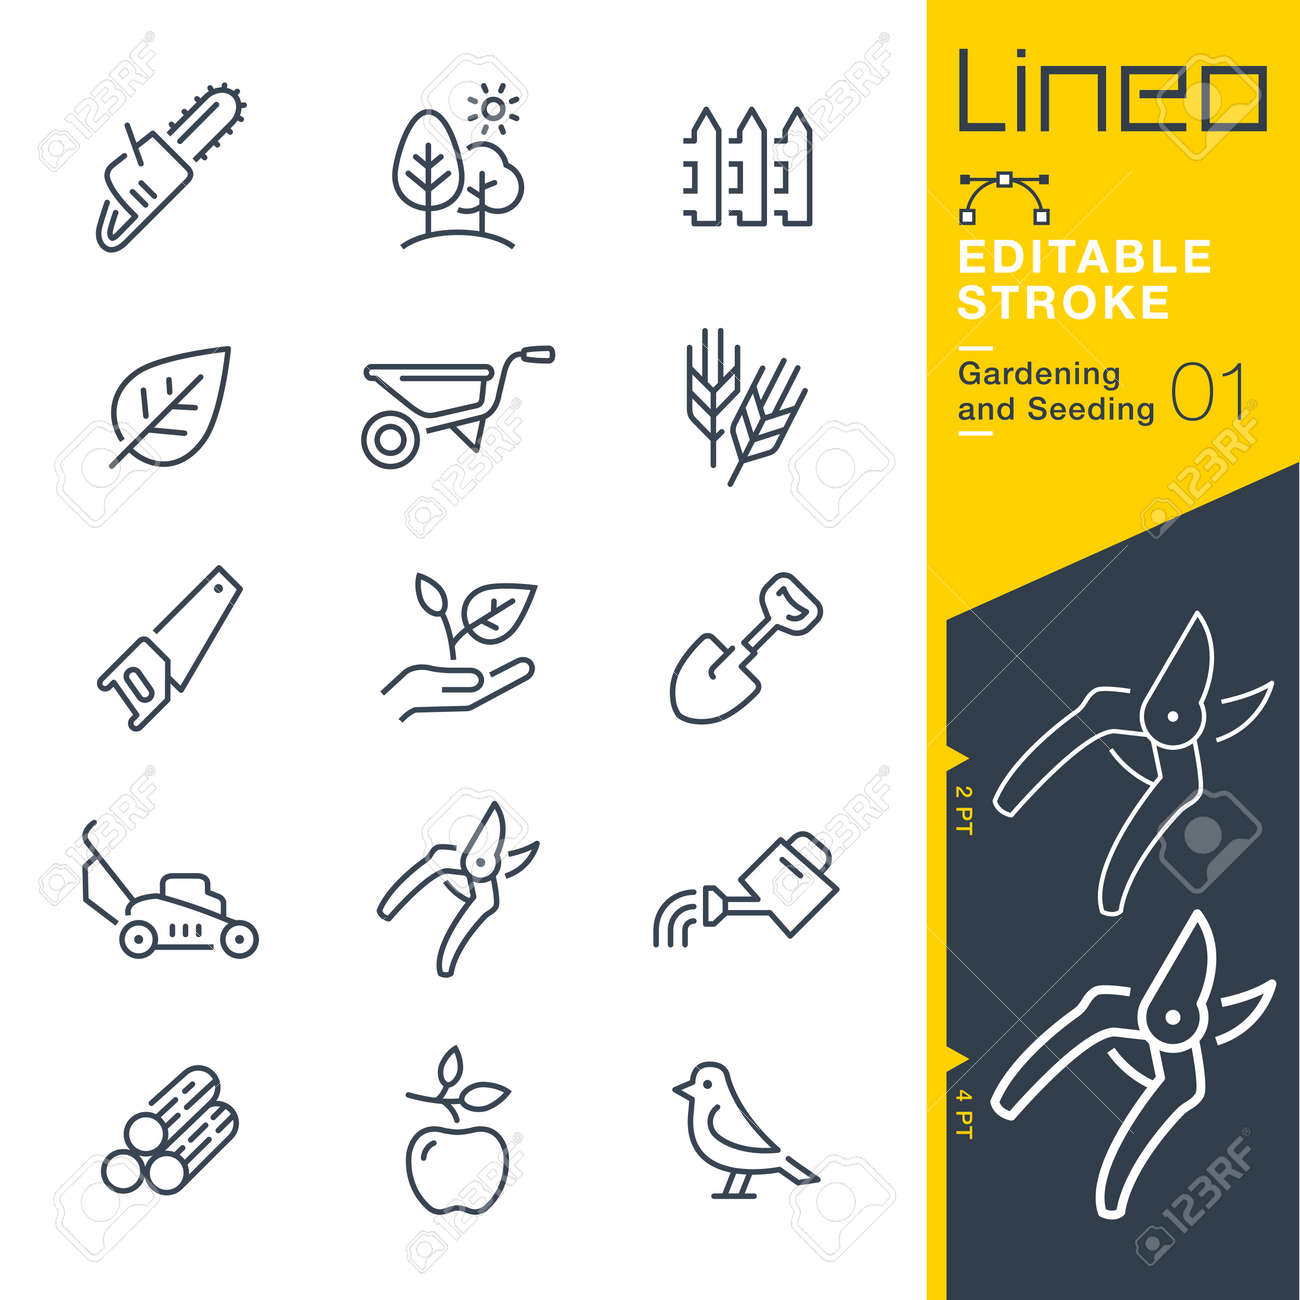 Lineo Editable Stroke - Gardening and Seeding line Vector icons - Adjust stroke weight - Change to any color - 79734019